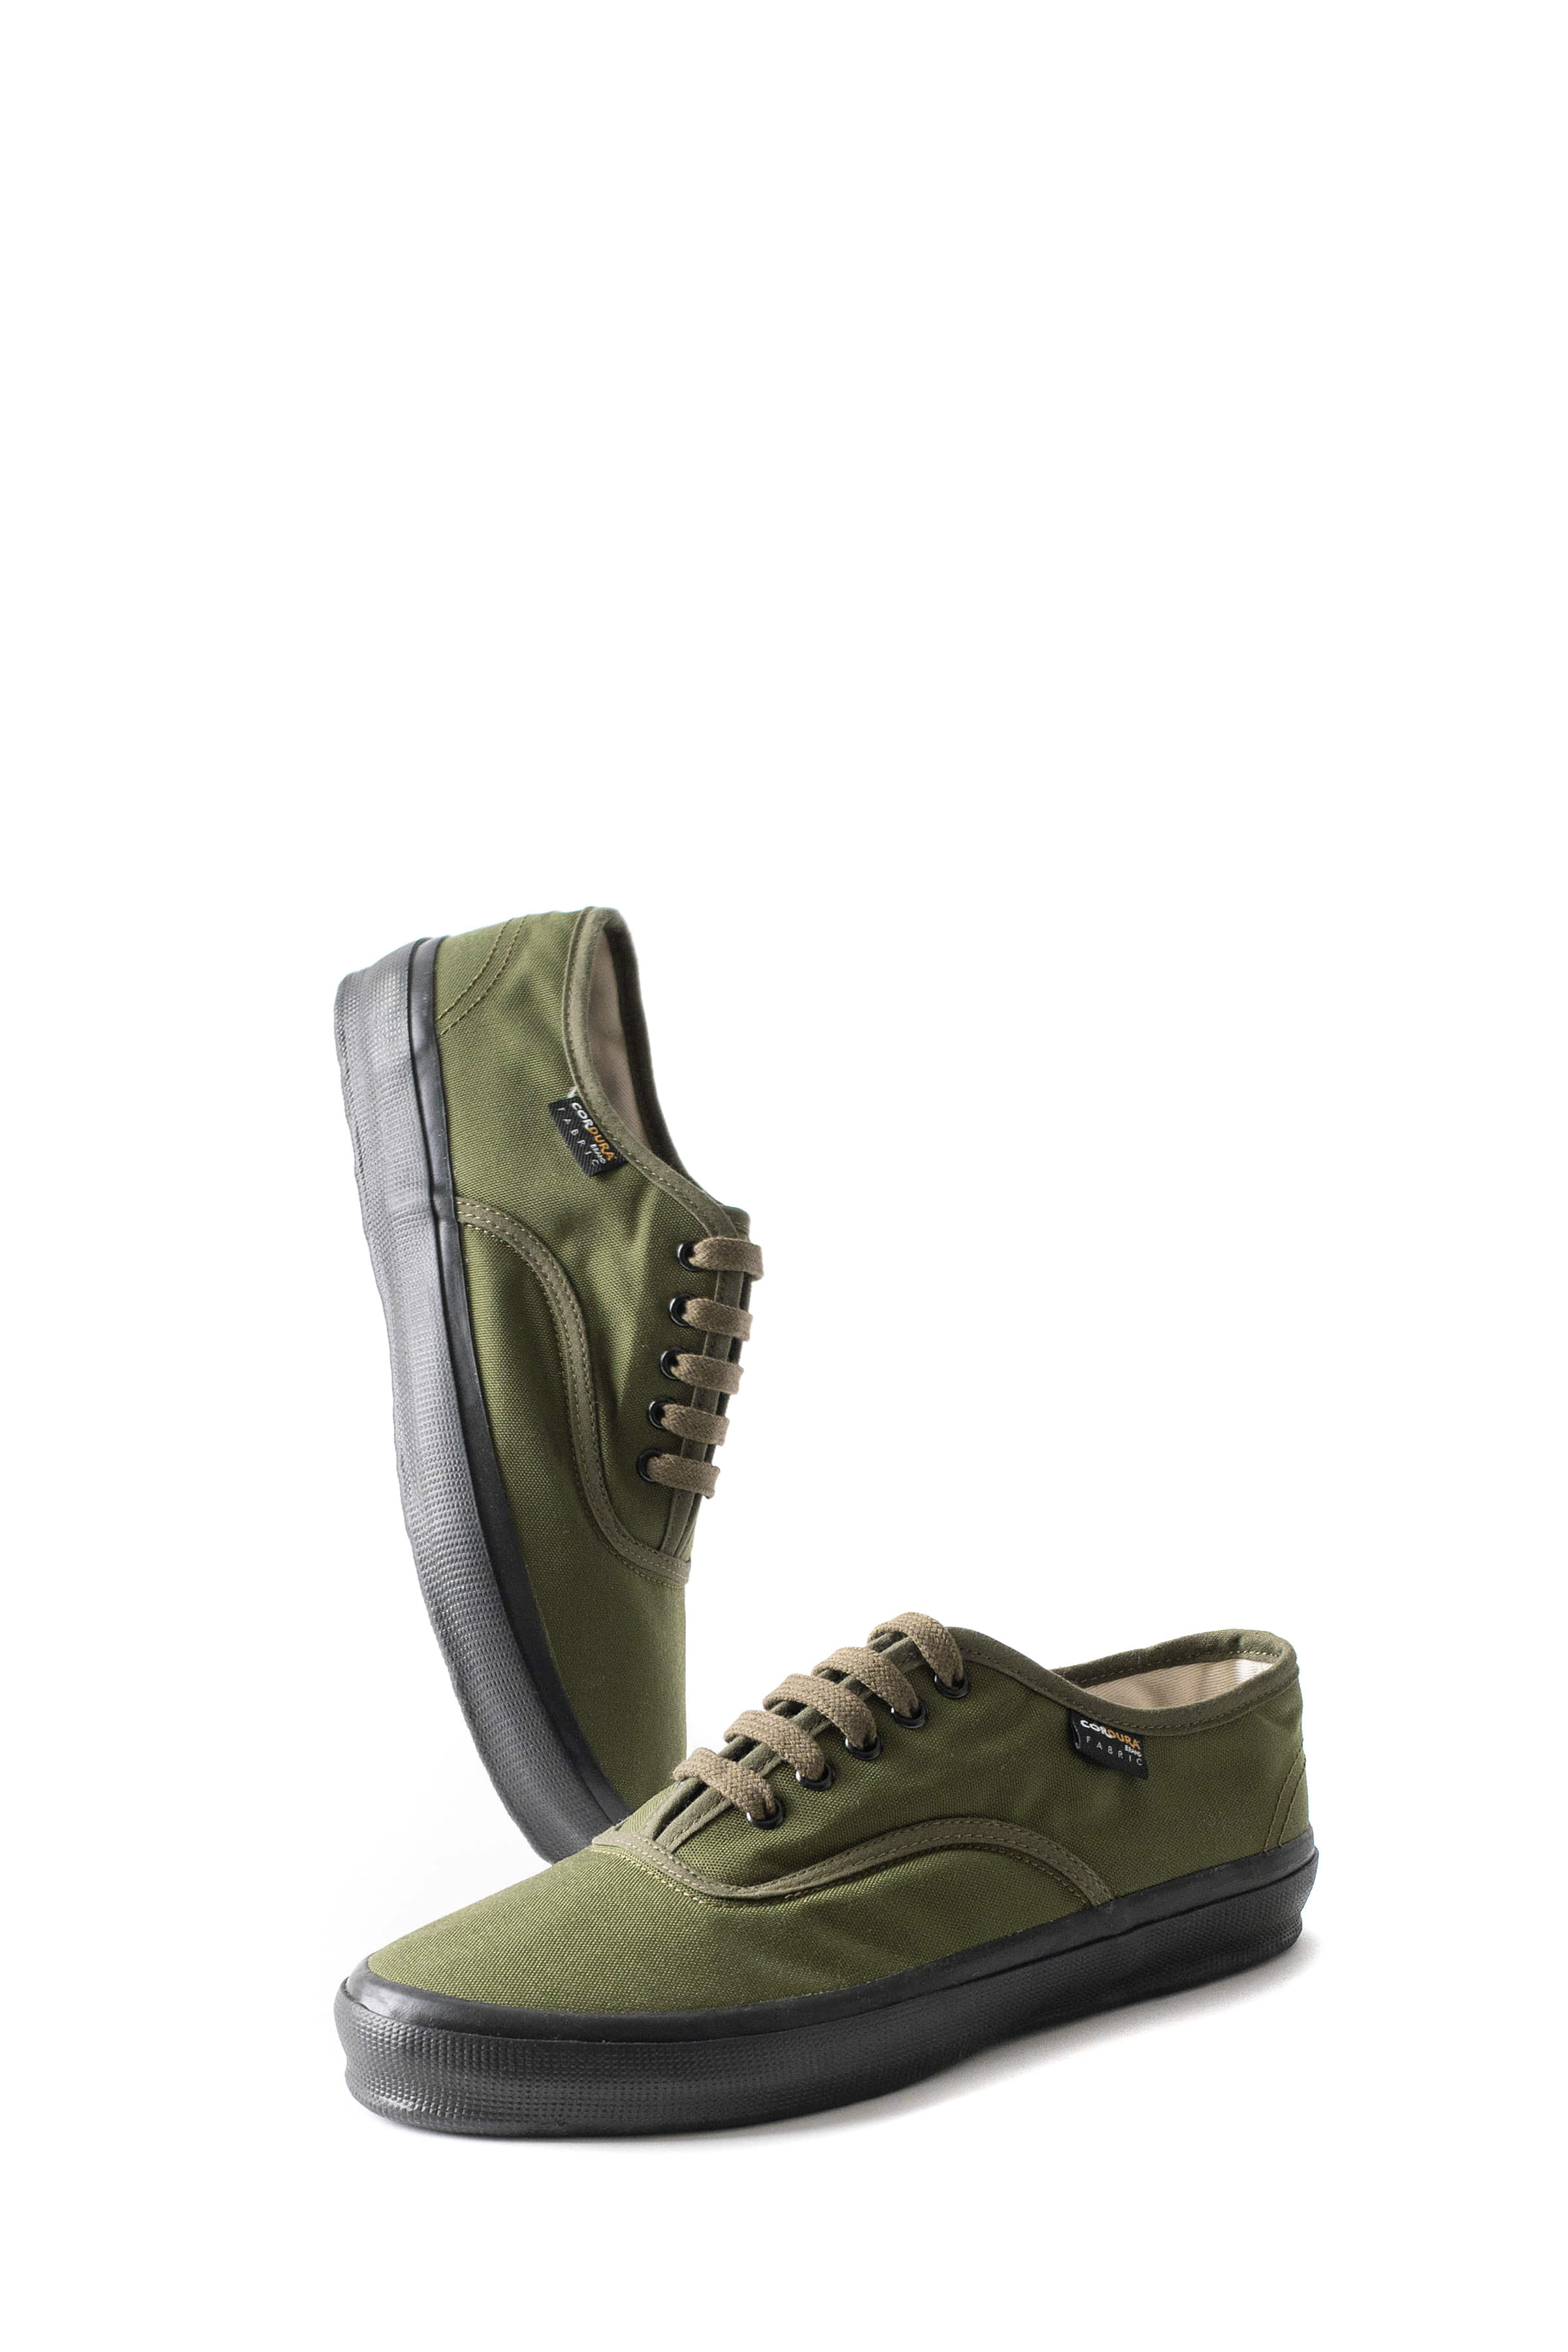 REPRODUCTION OF FOUND : US Navy Military Trainer 5851C (Olive / Black Sole)